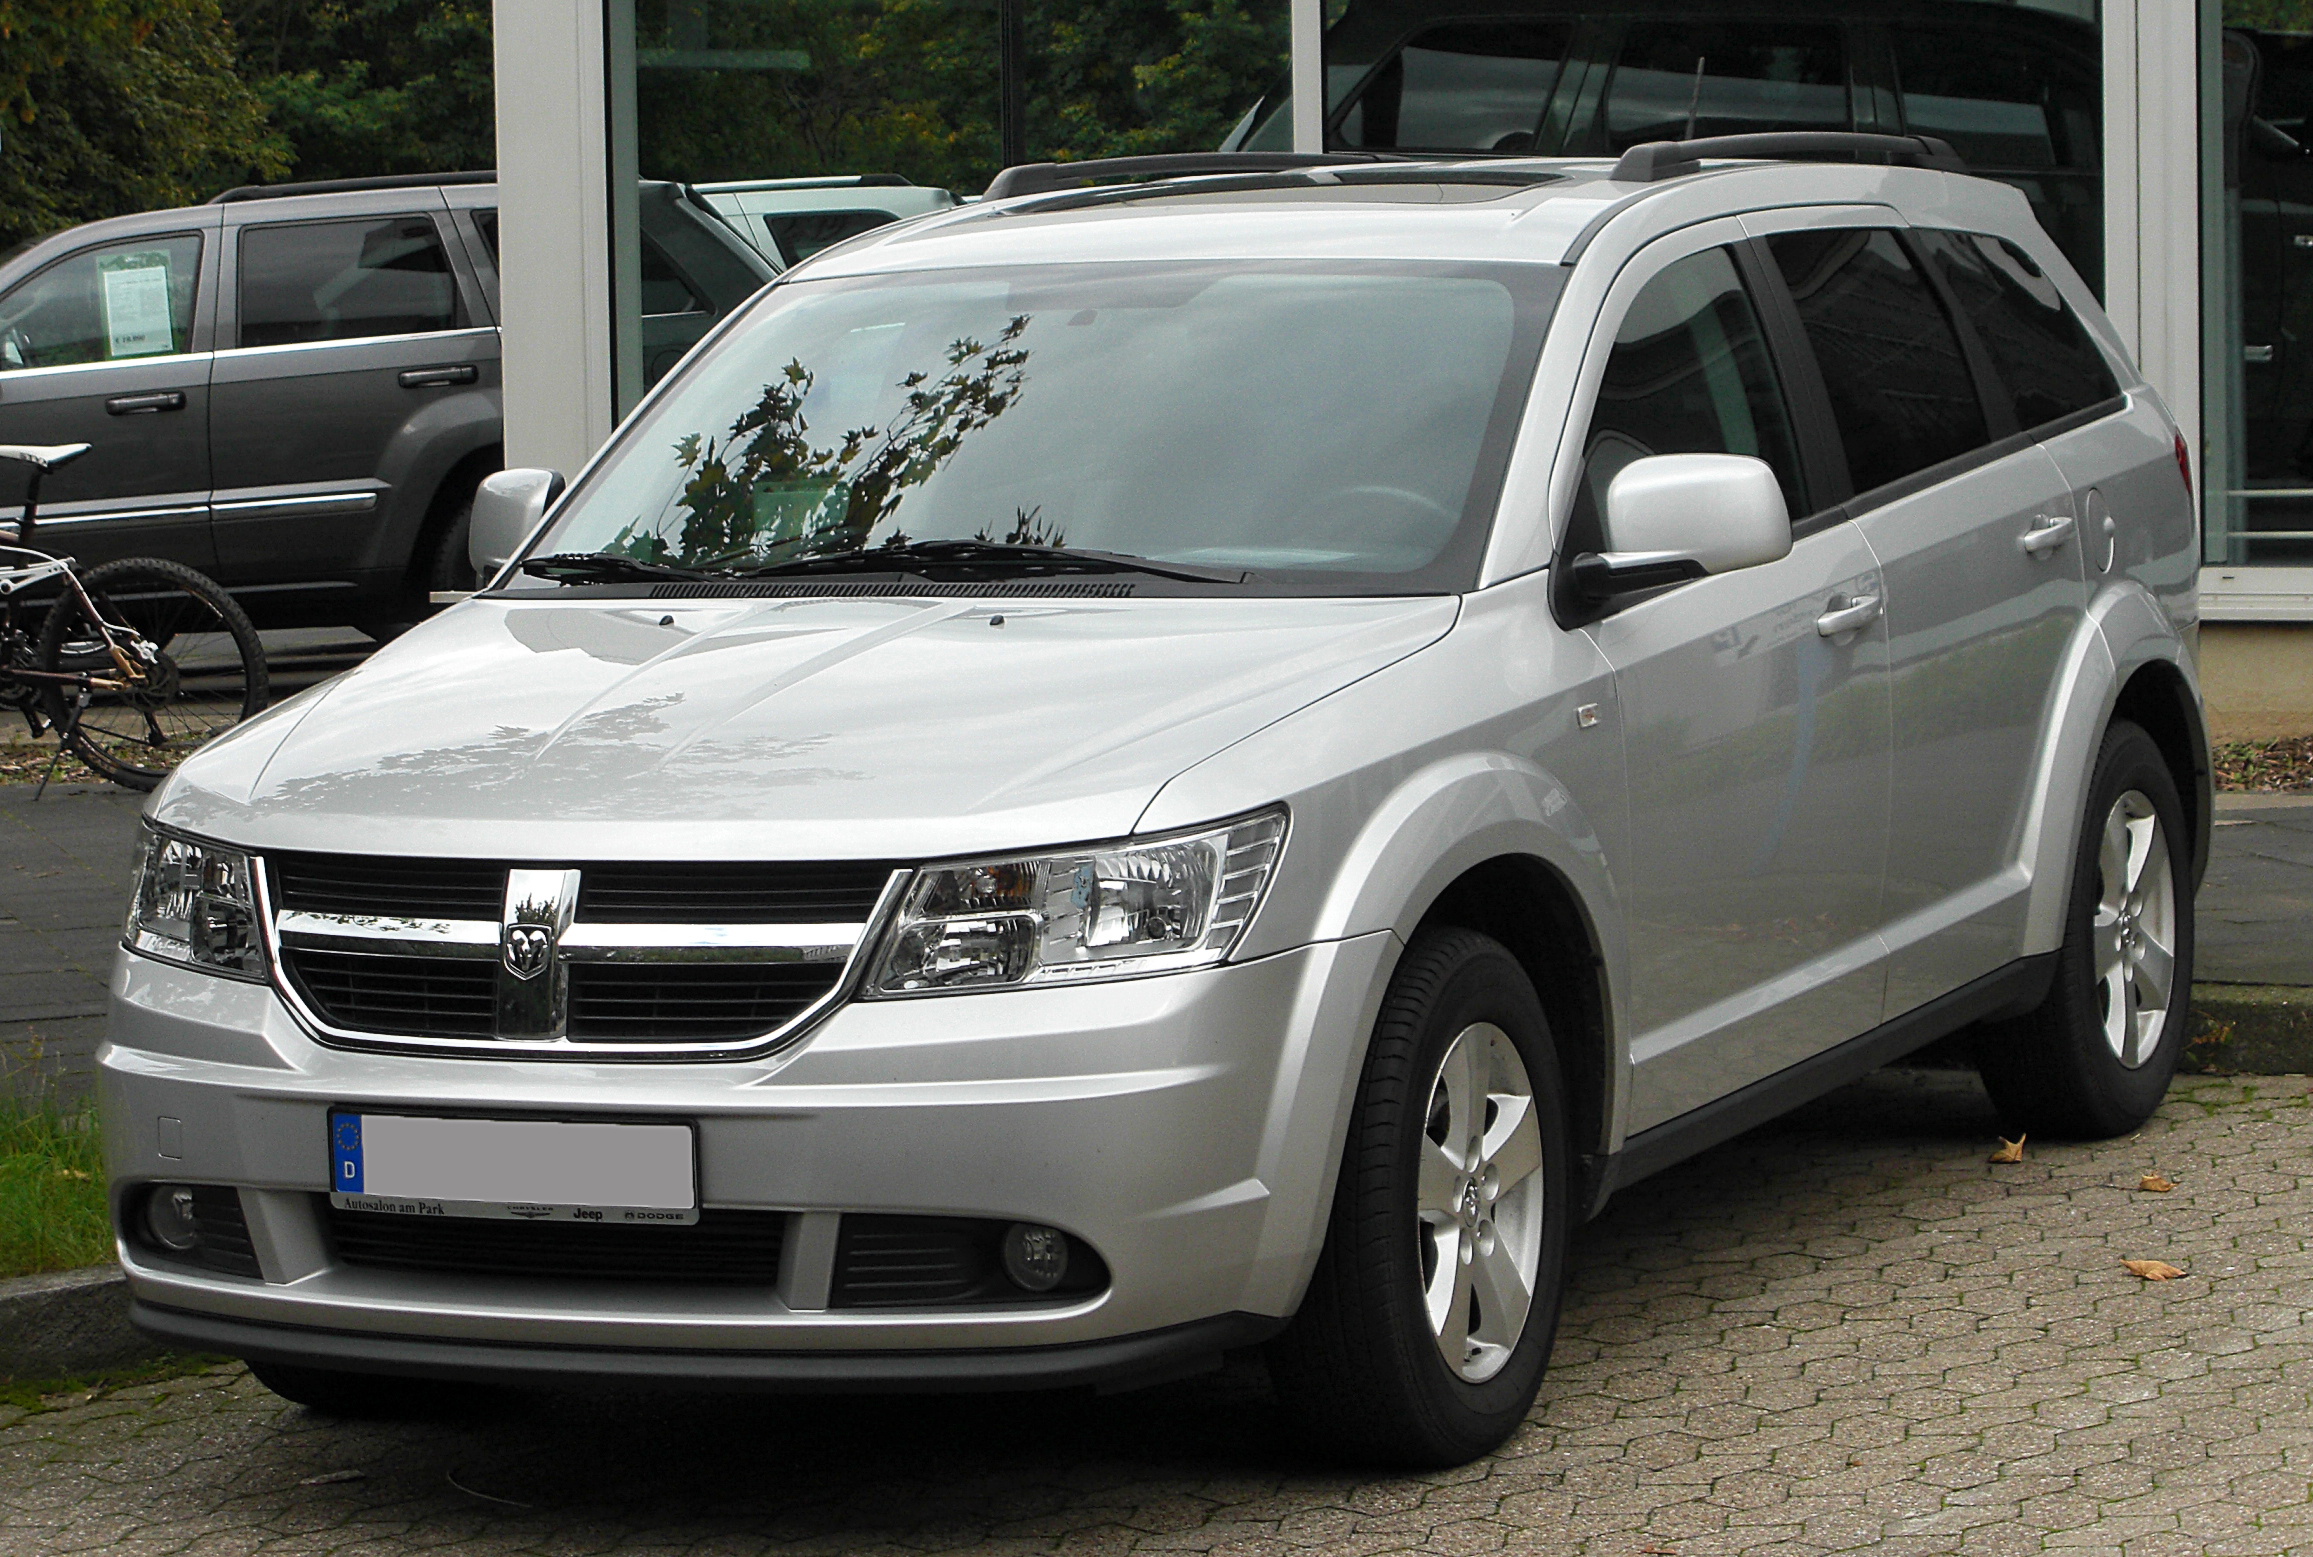 file dodge journey front wikimedia commons. Black Bedroom Furniture Sets. Home Design Ideas